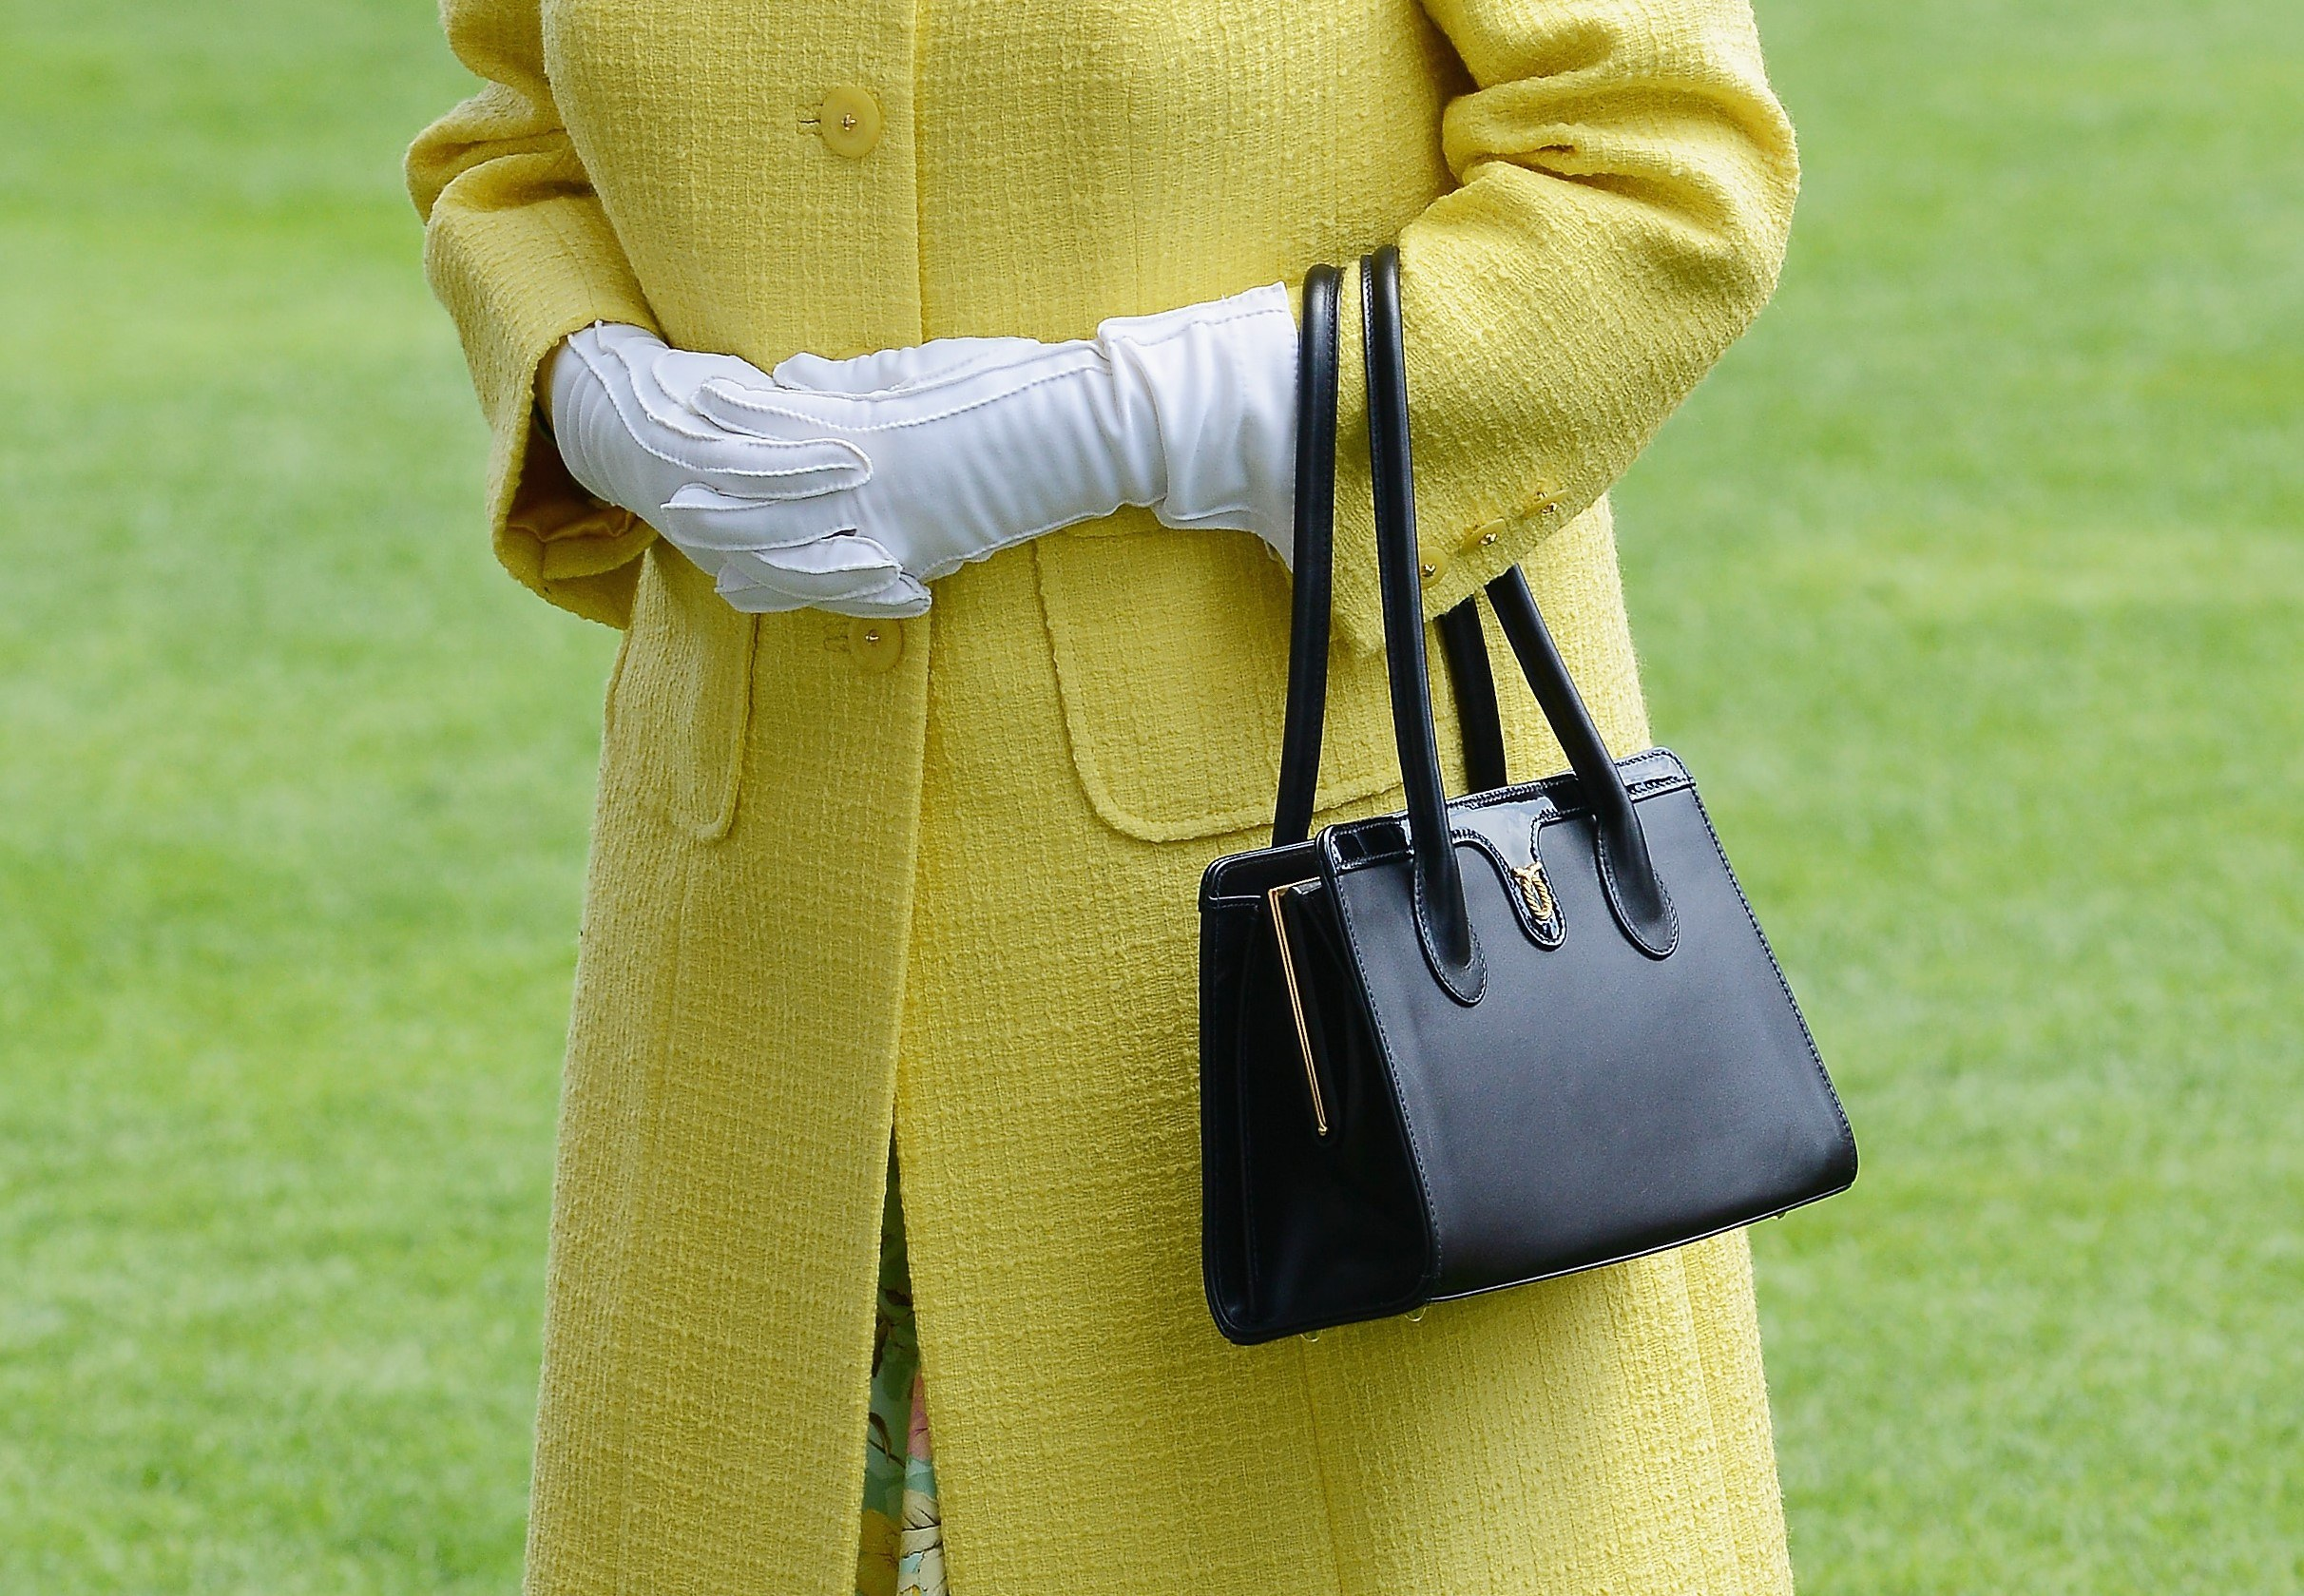 Queen Elizabeth purse